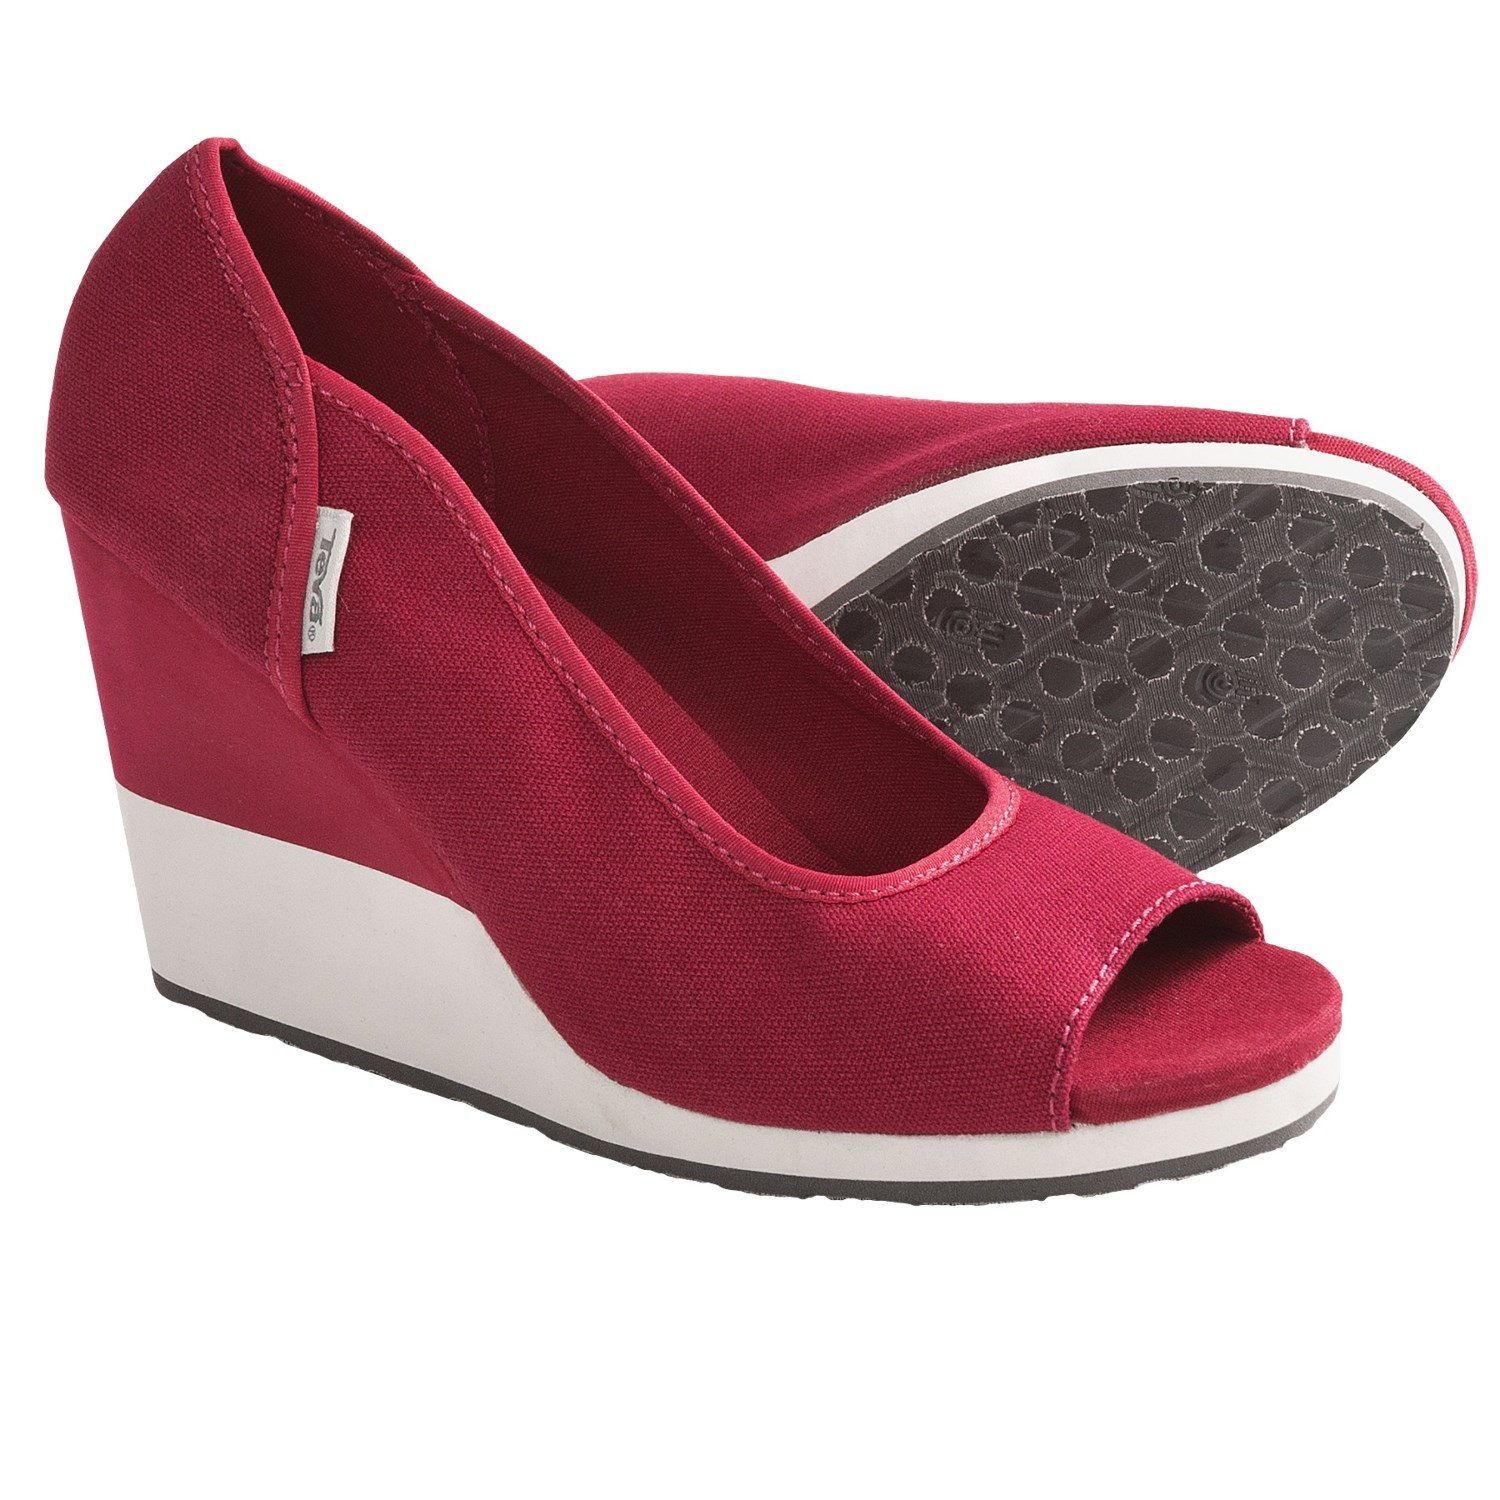 Shoes With A Wedge Heel